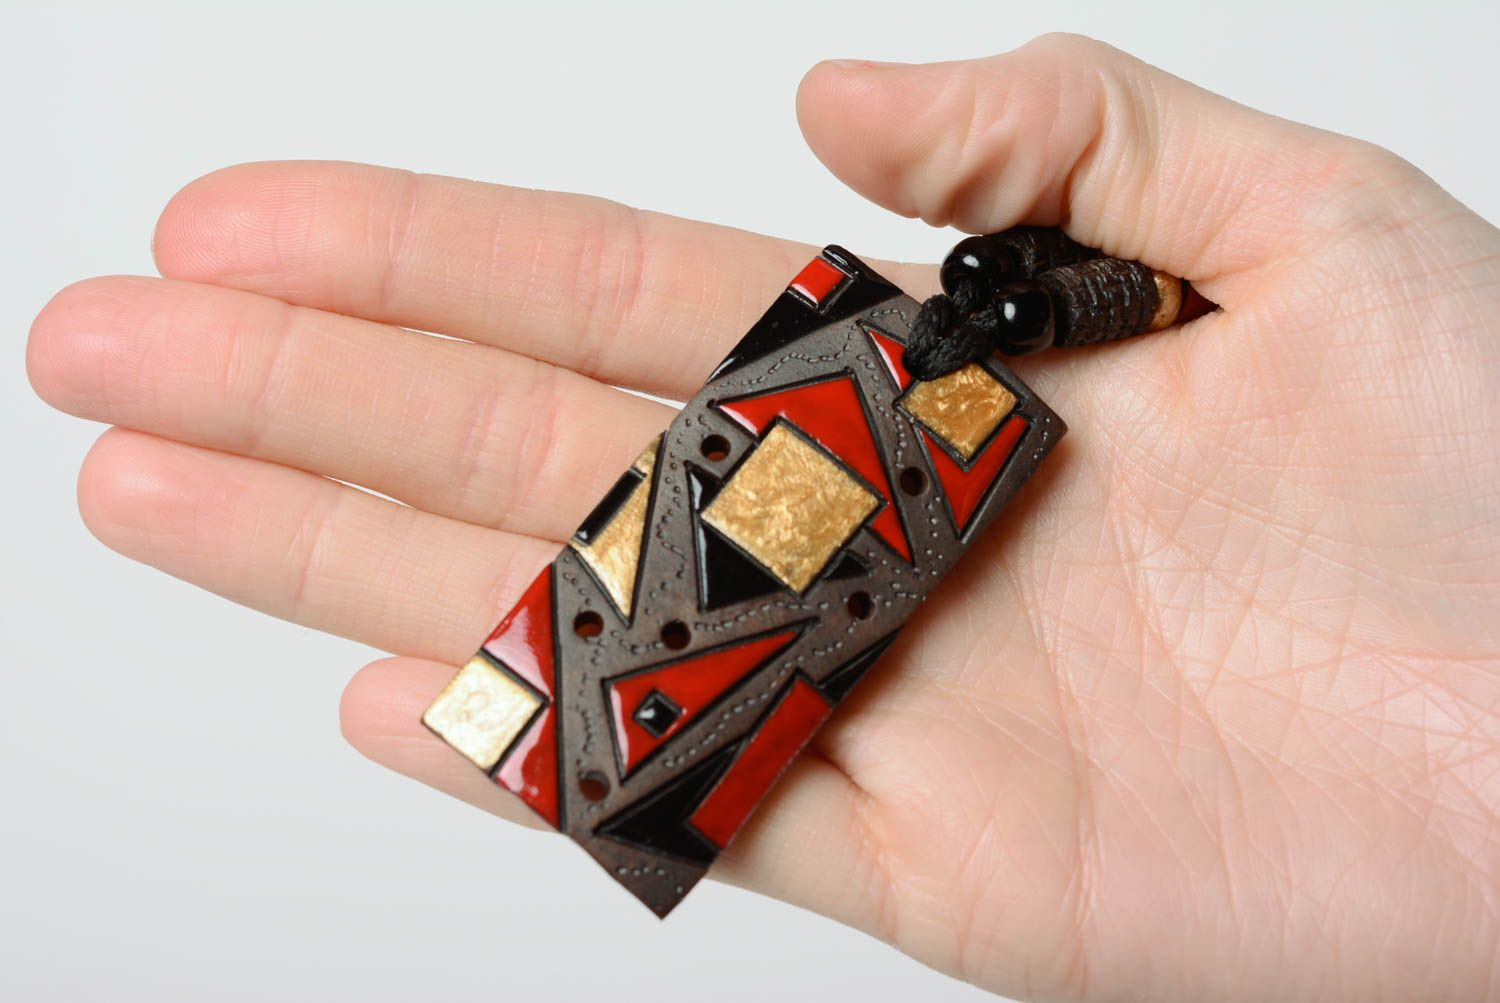 pendants Handcrafted ceramic pendant made of clay with colored enamel paintings - MADEheart.com